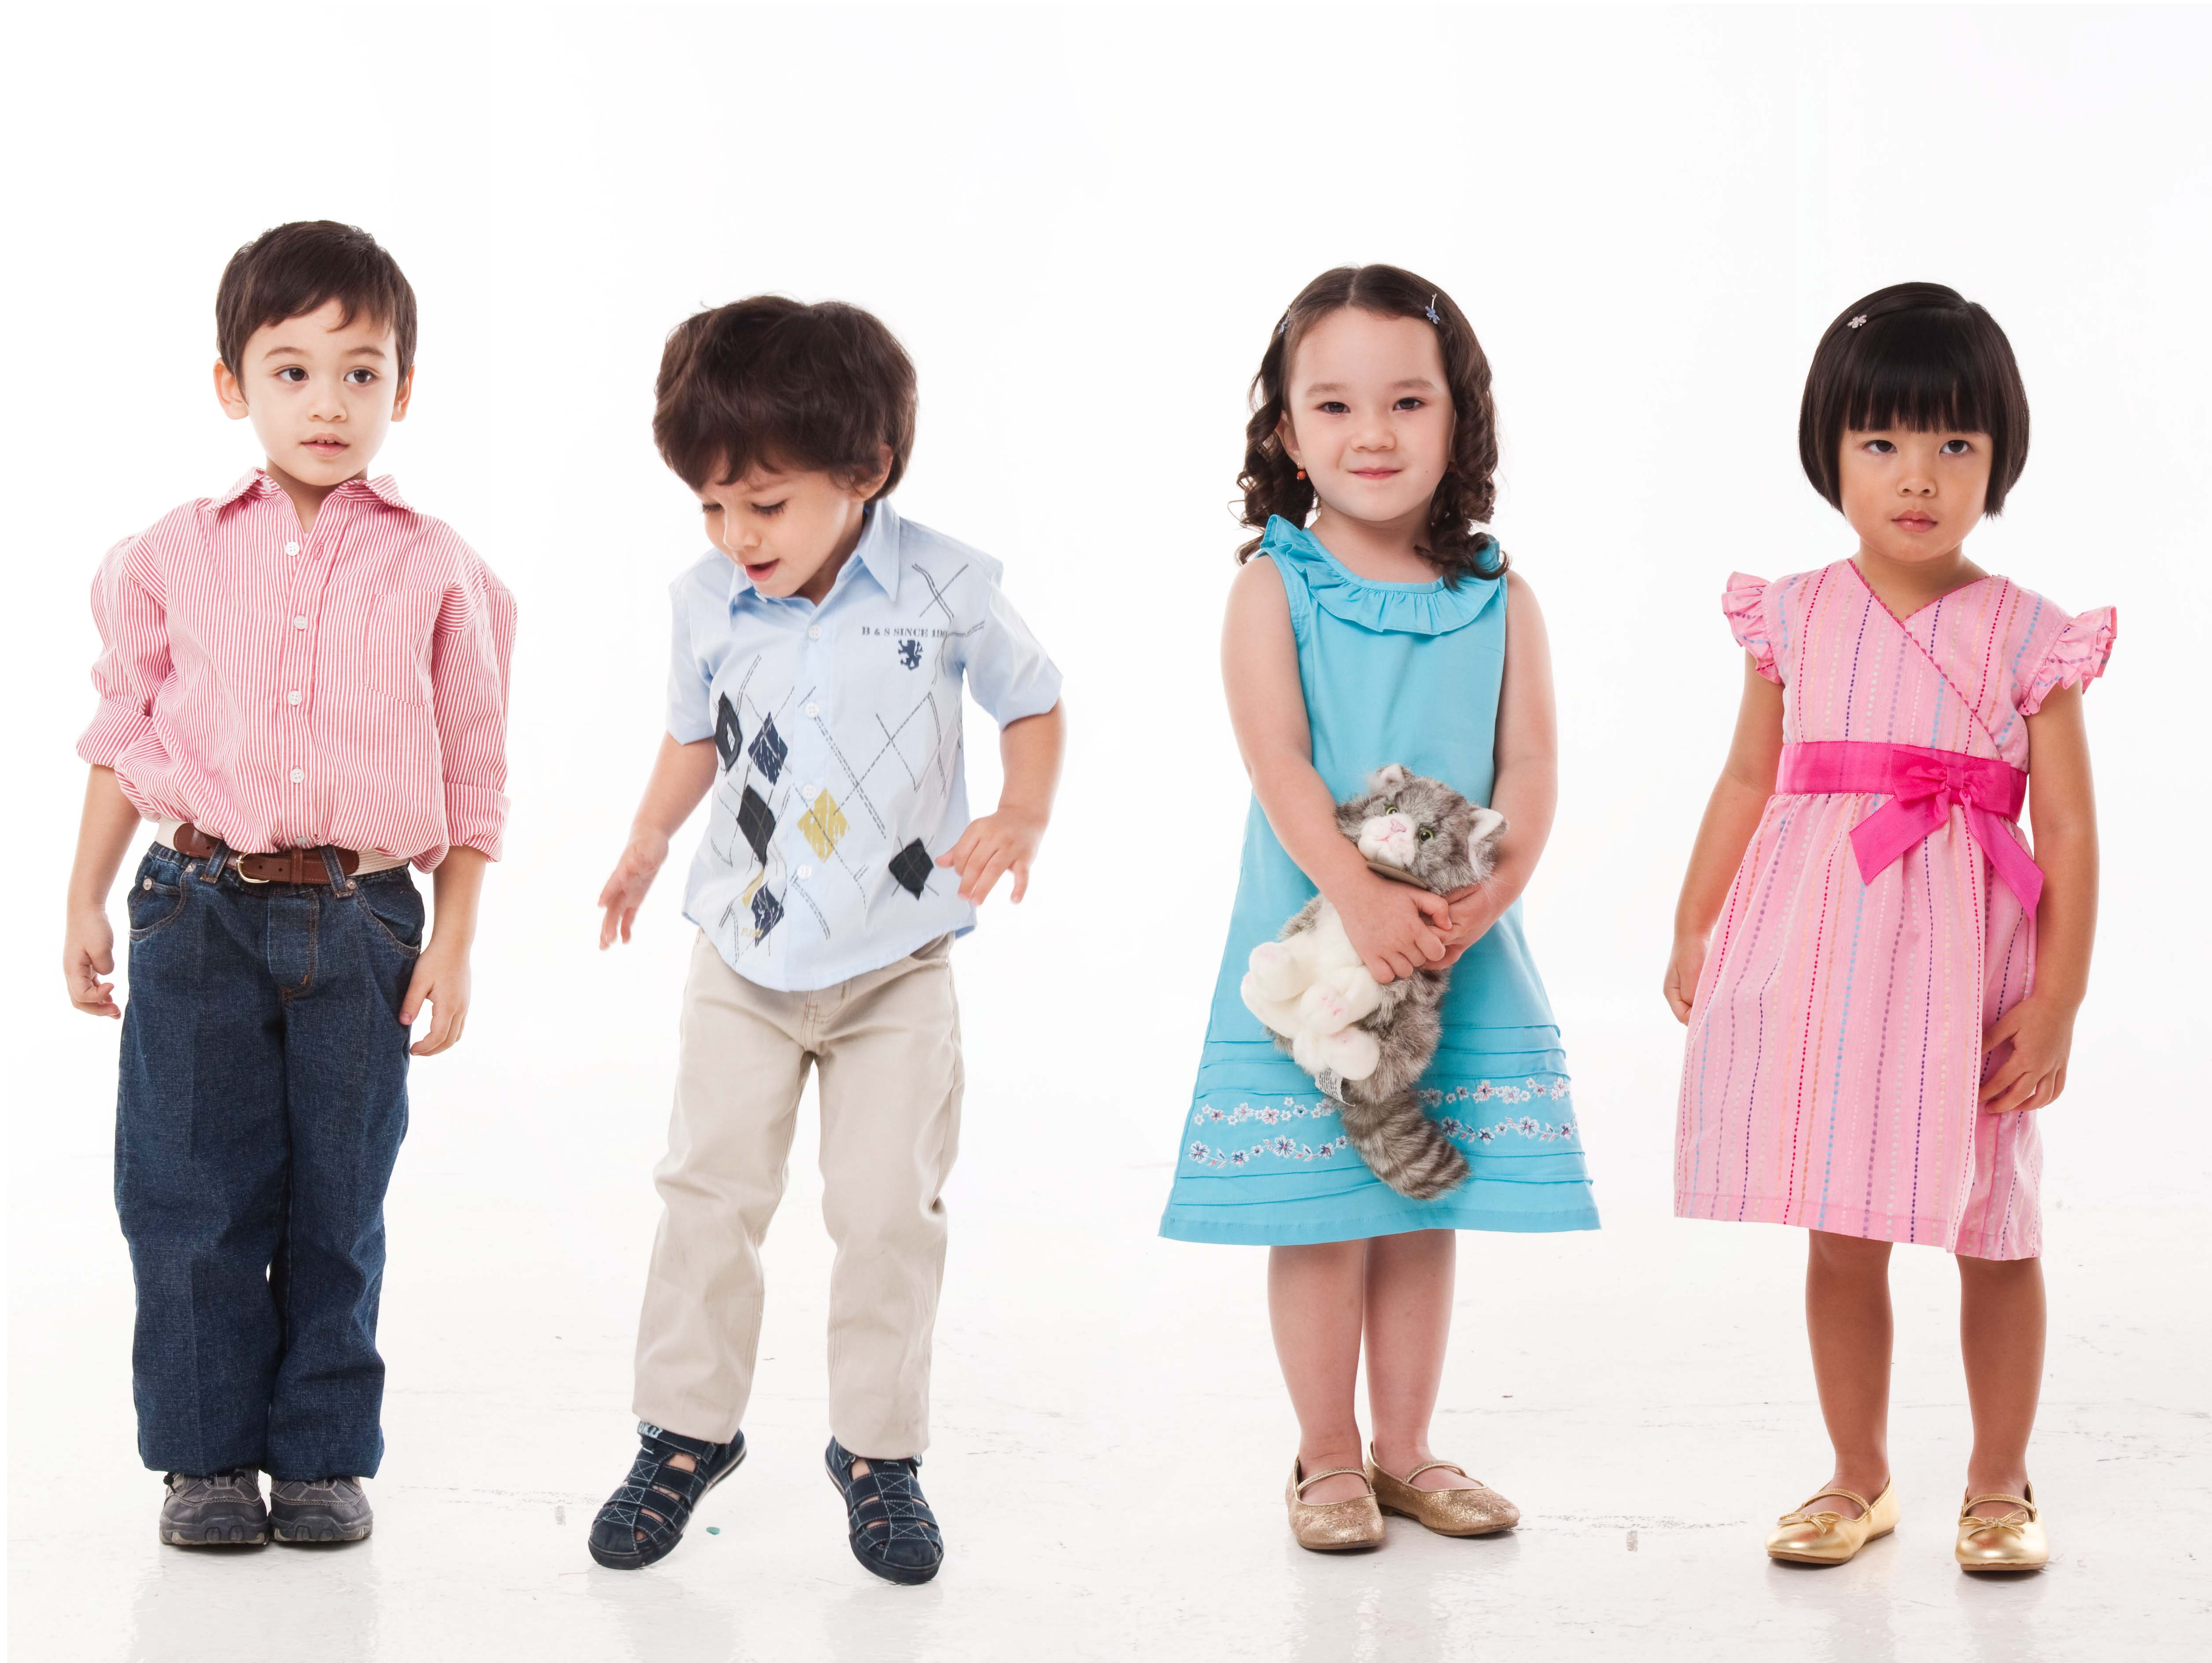 5 Best Clothing Brands for Your Kids - New Kids Center